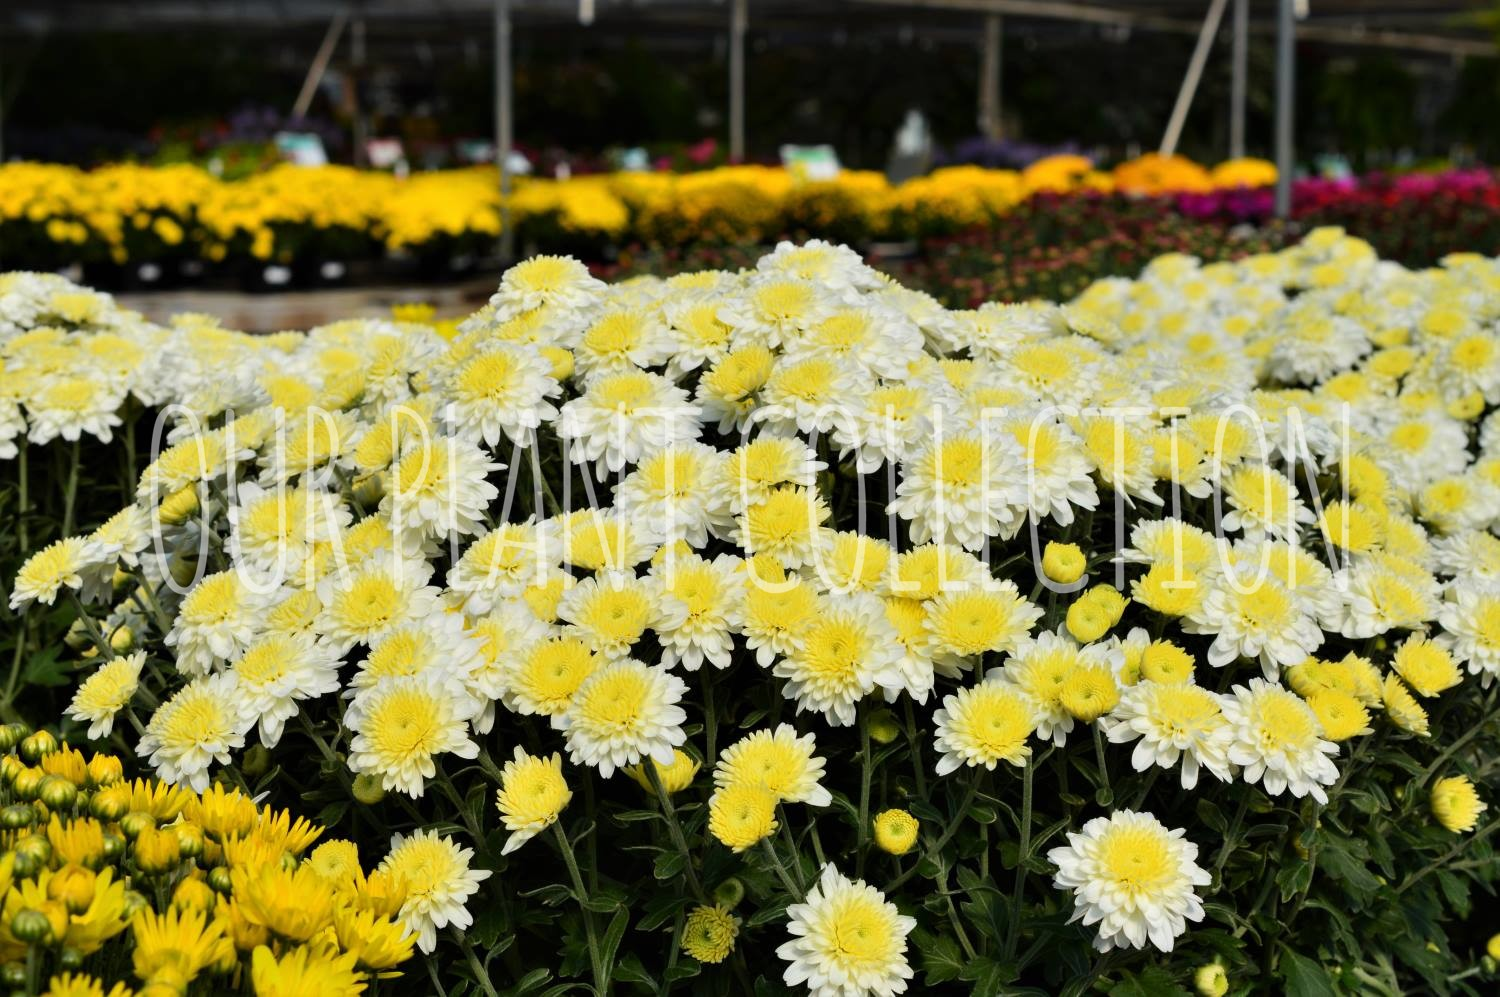 Chrysanthemum- White Chrysanthemum